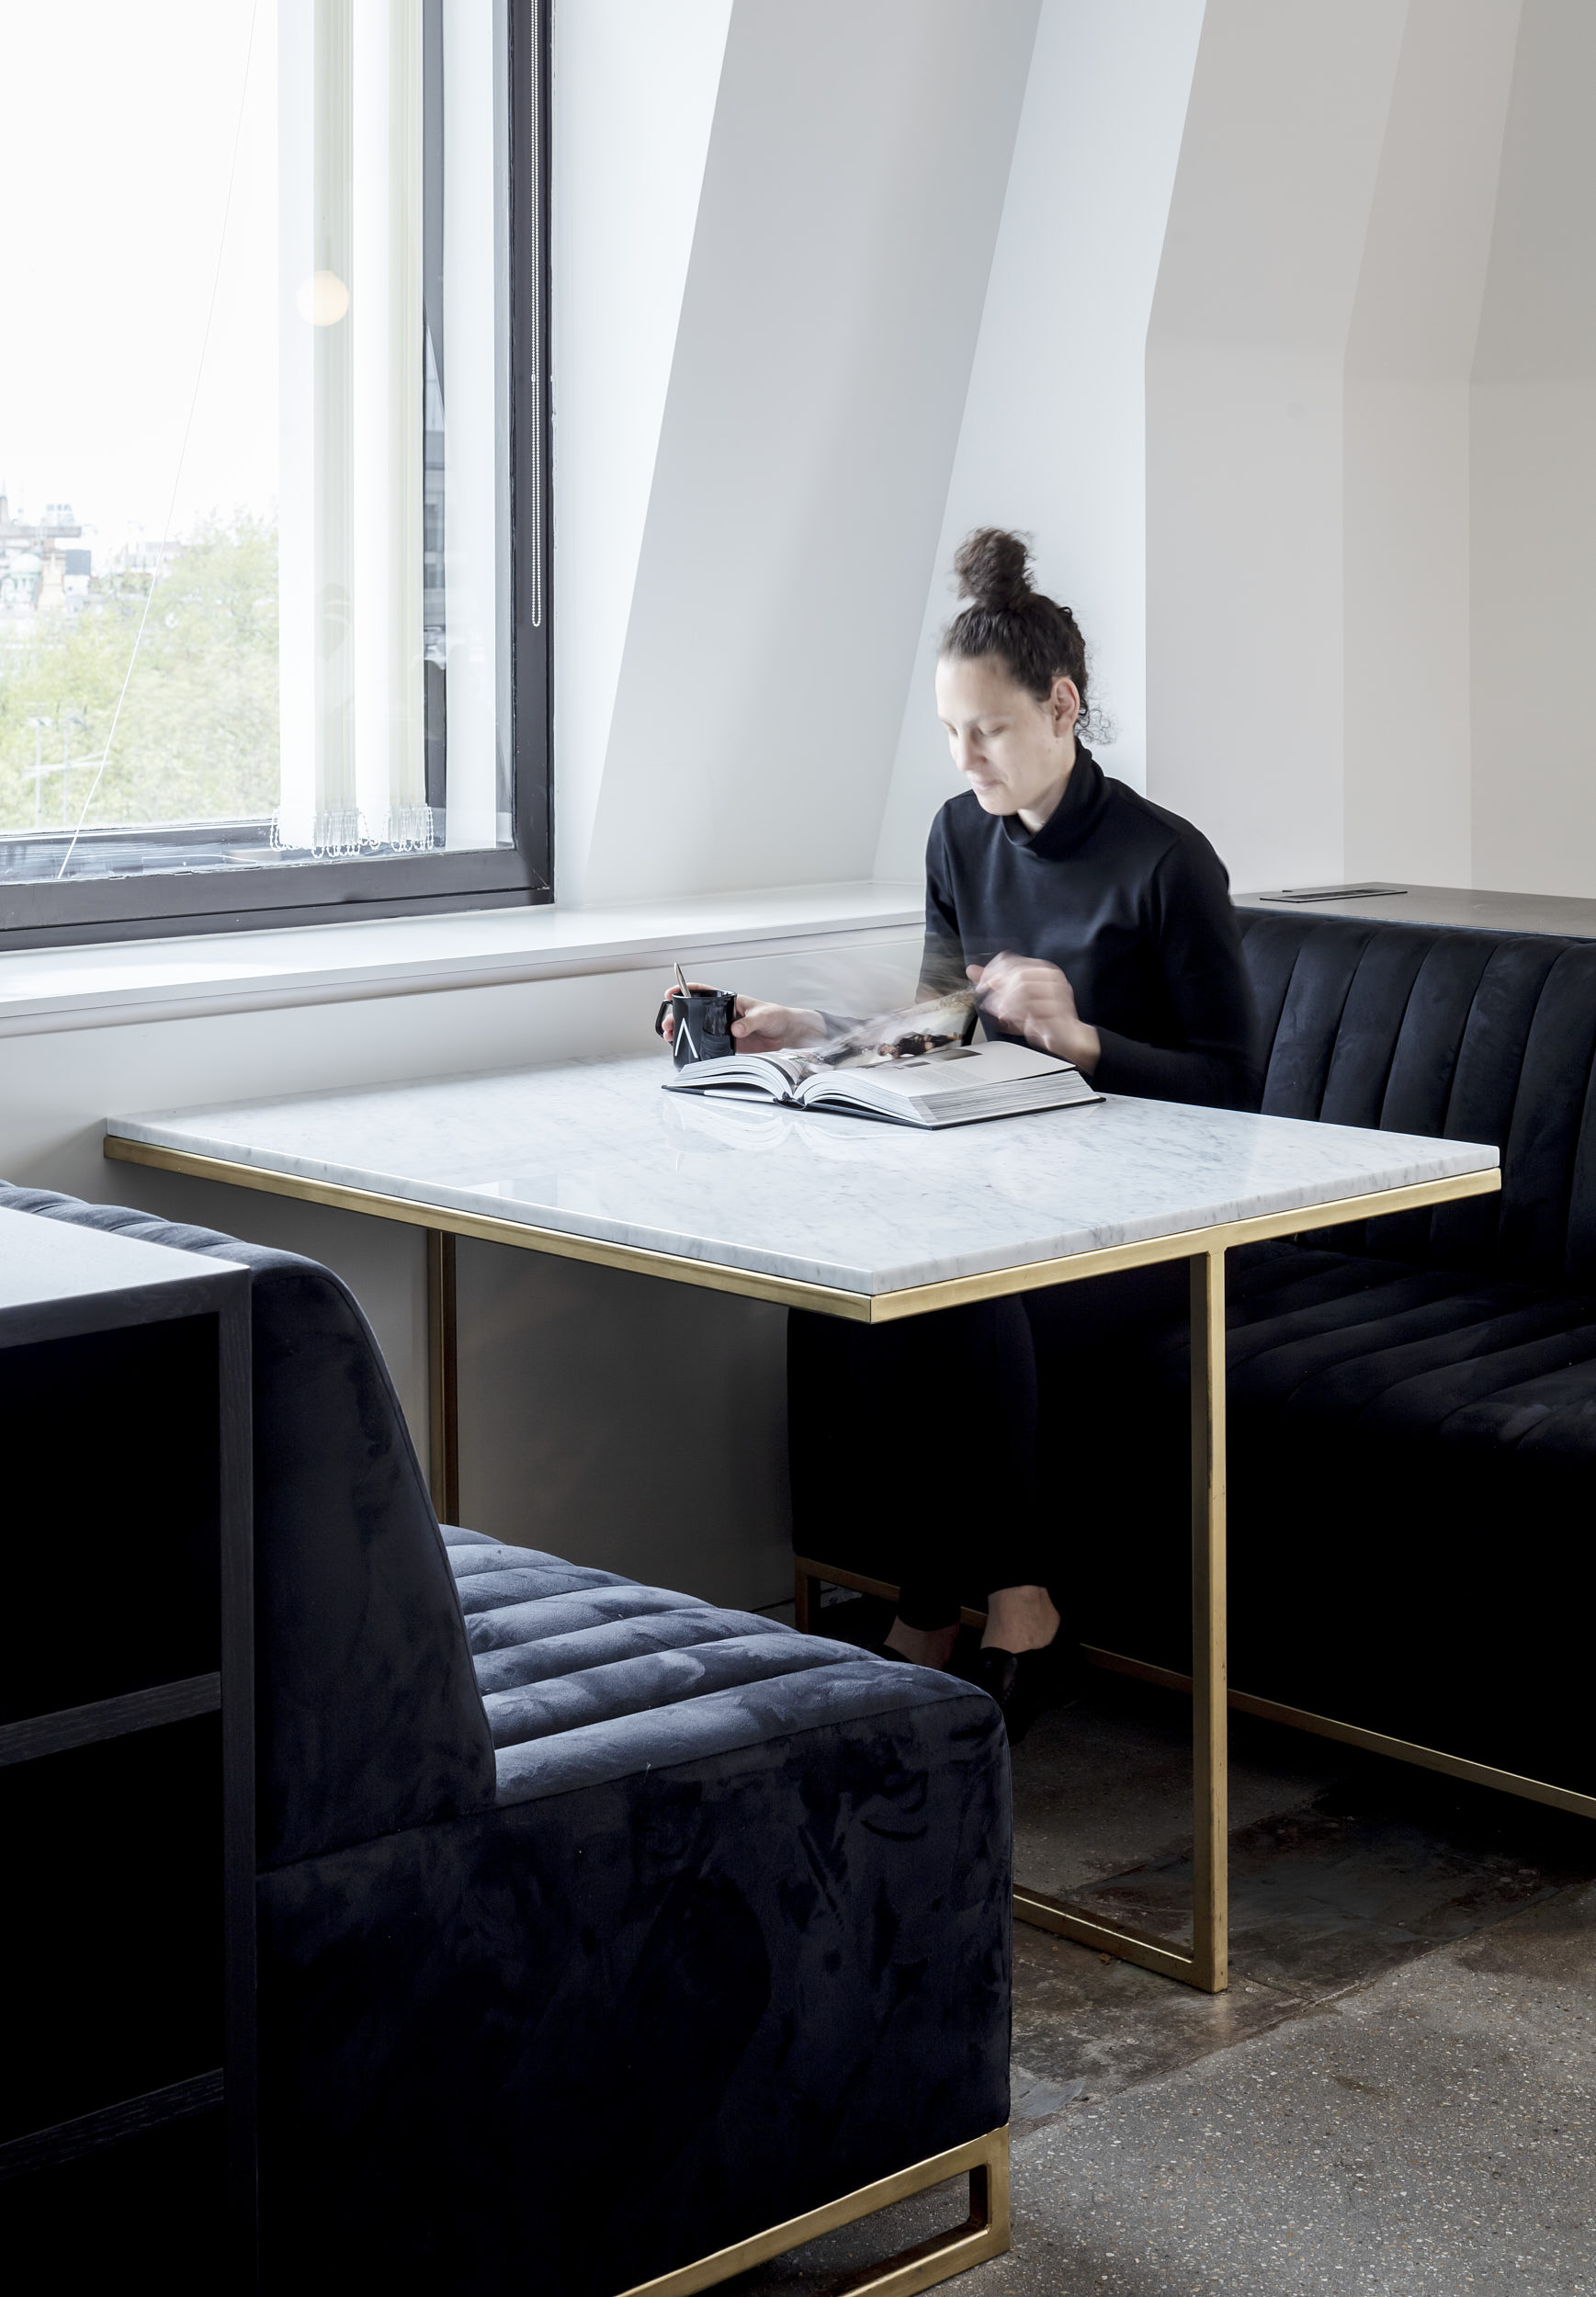 Booths create tranquil environments for study and work.